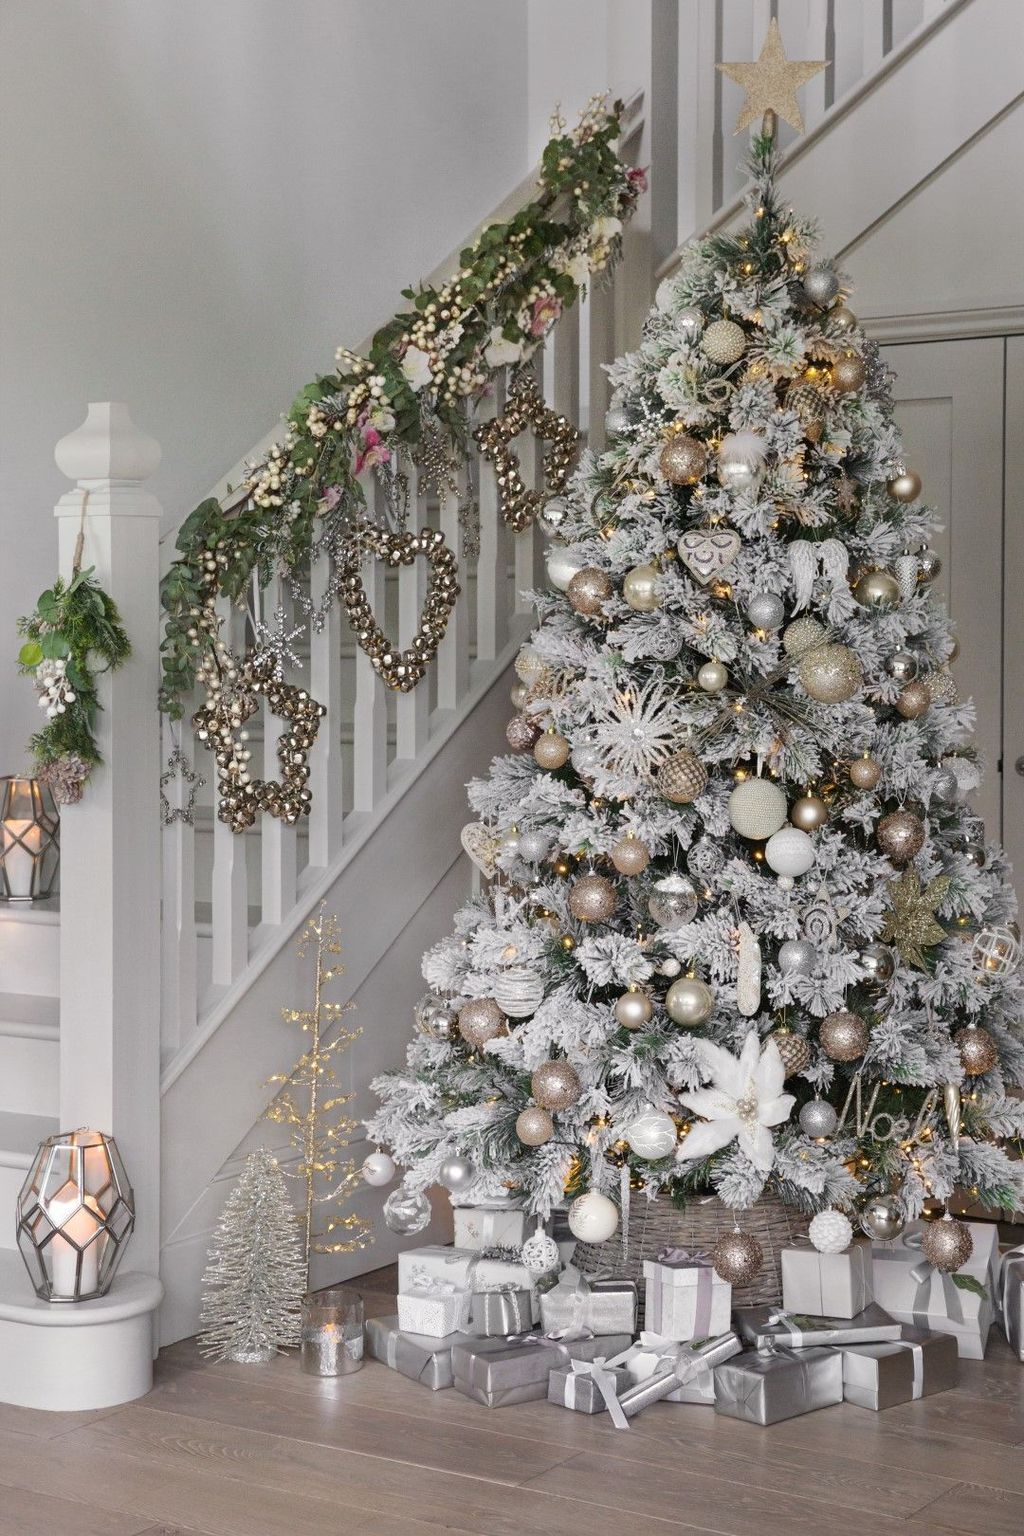 Who Had A White Christmas In 2020 31 Stunning Luxury Christmas Home Decoration Ideas in 2020 | White